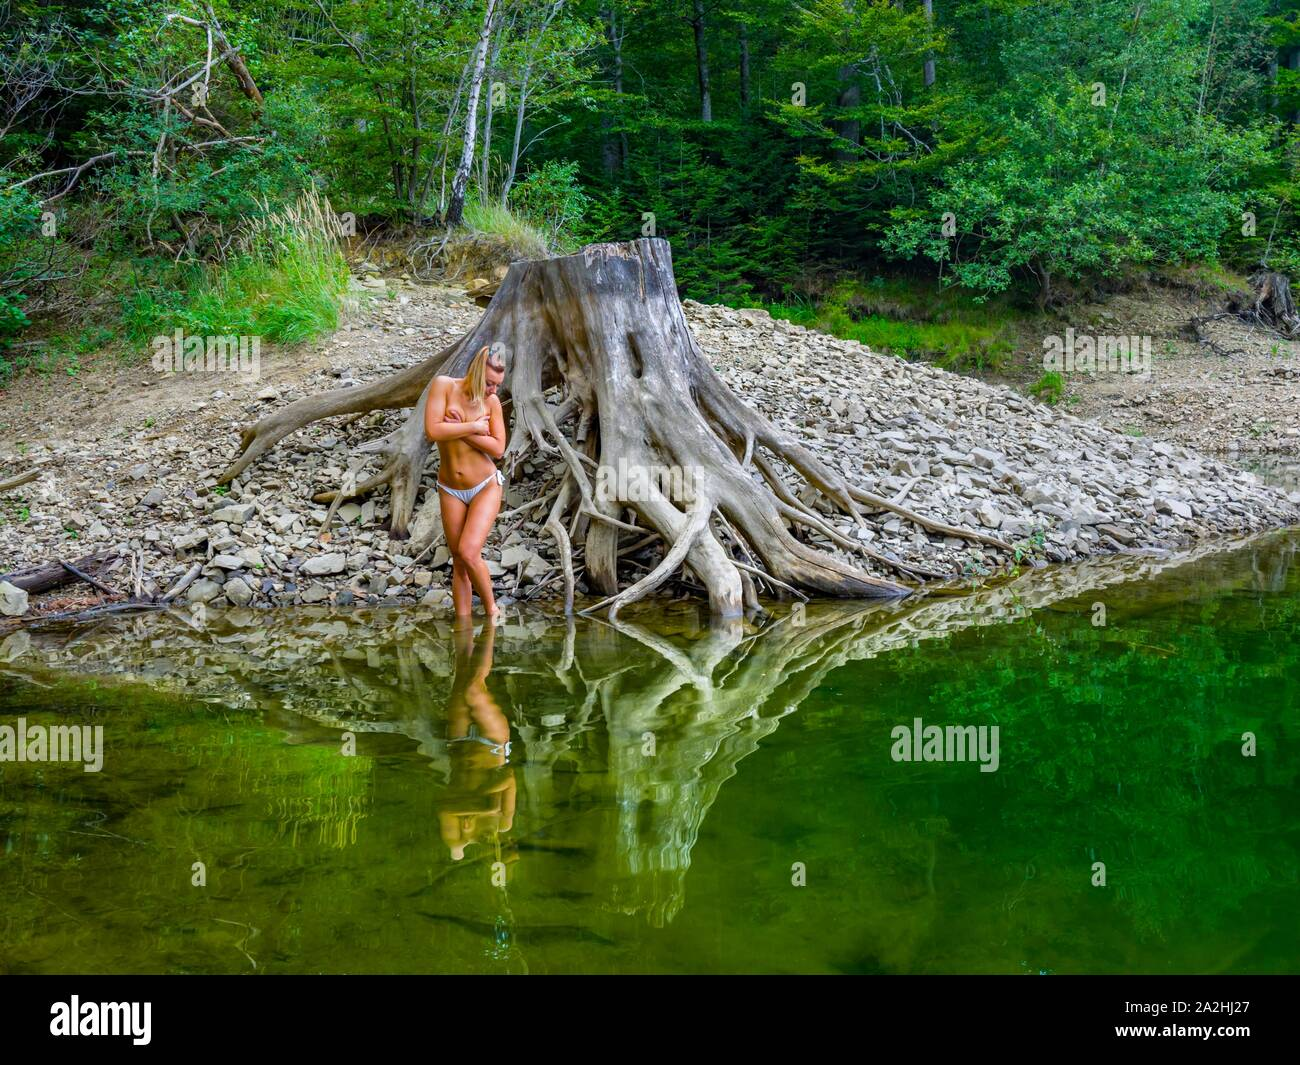 Young almost nude attractive woman in nature standing next to besides  big tree stump root near lake coastline Green forest blonde hair looking down Stock Photo